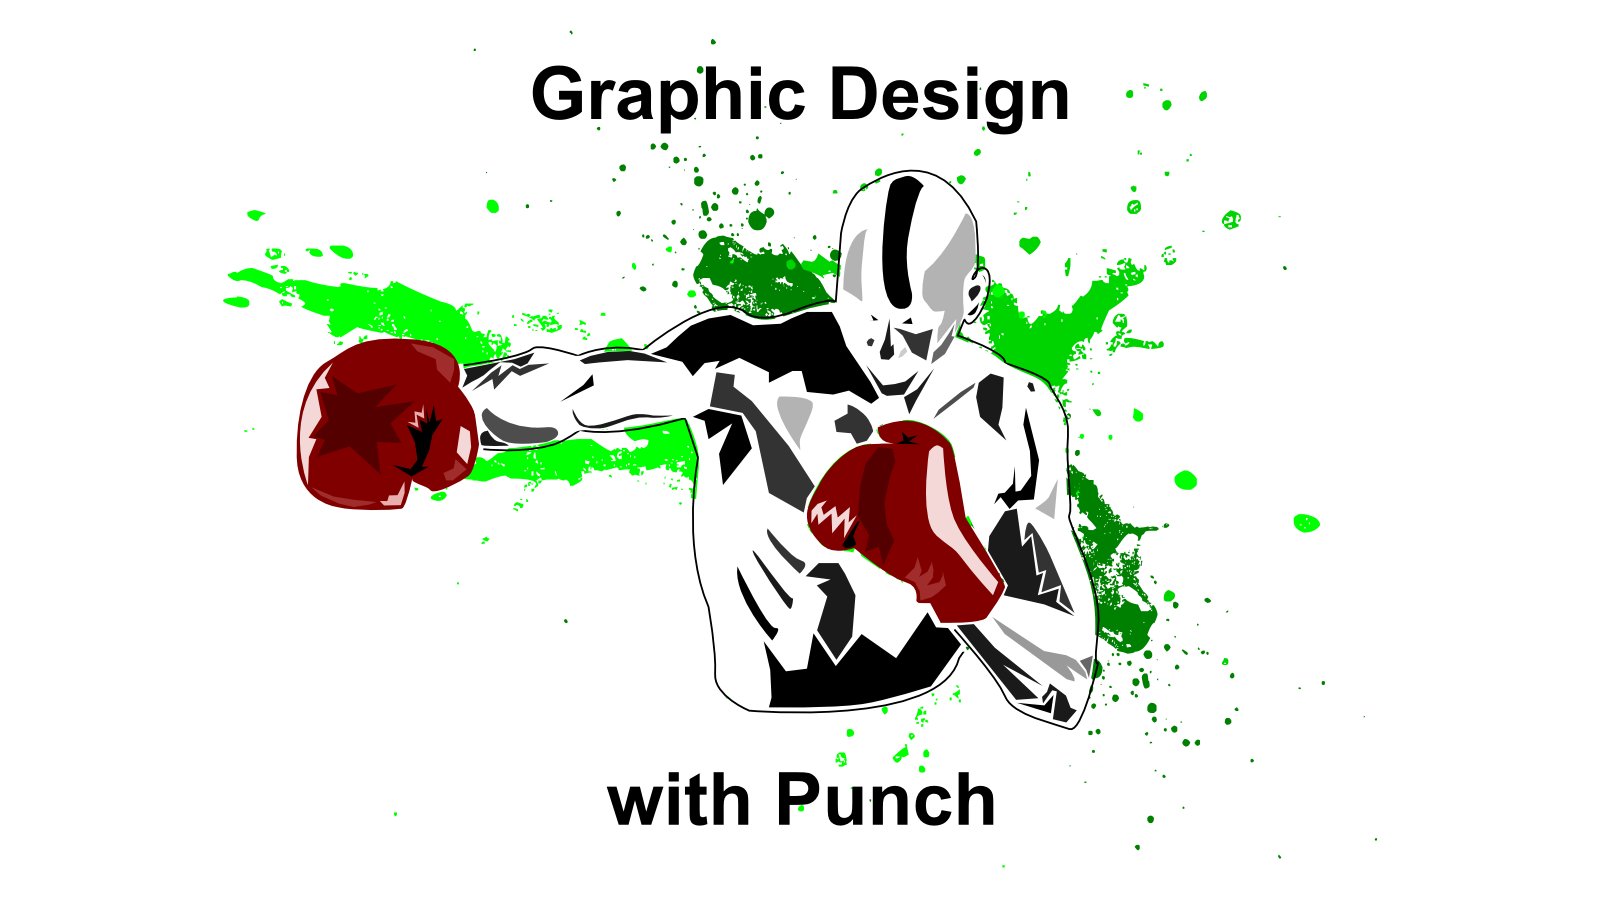 Graphic design with punch